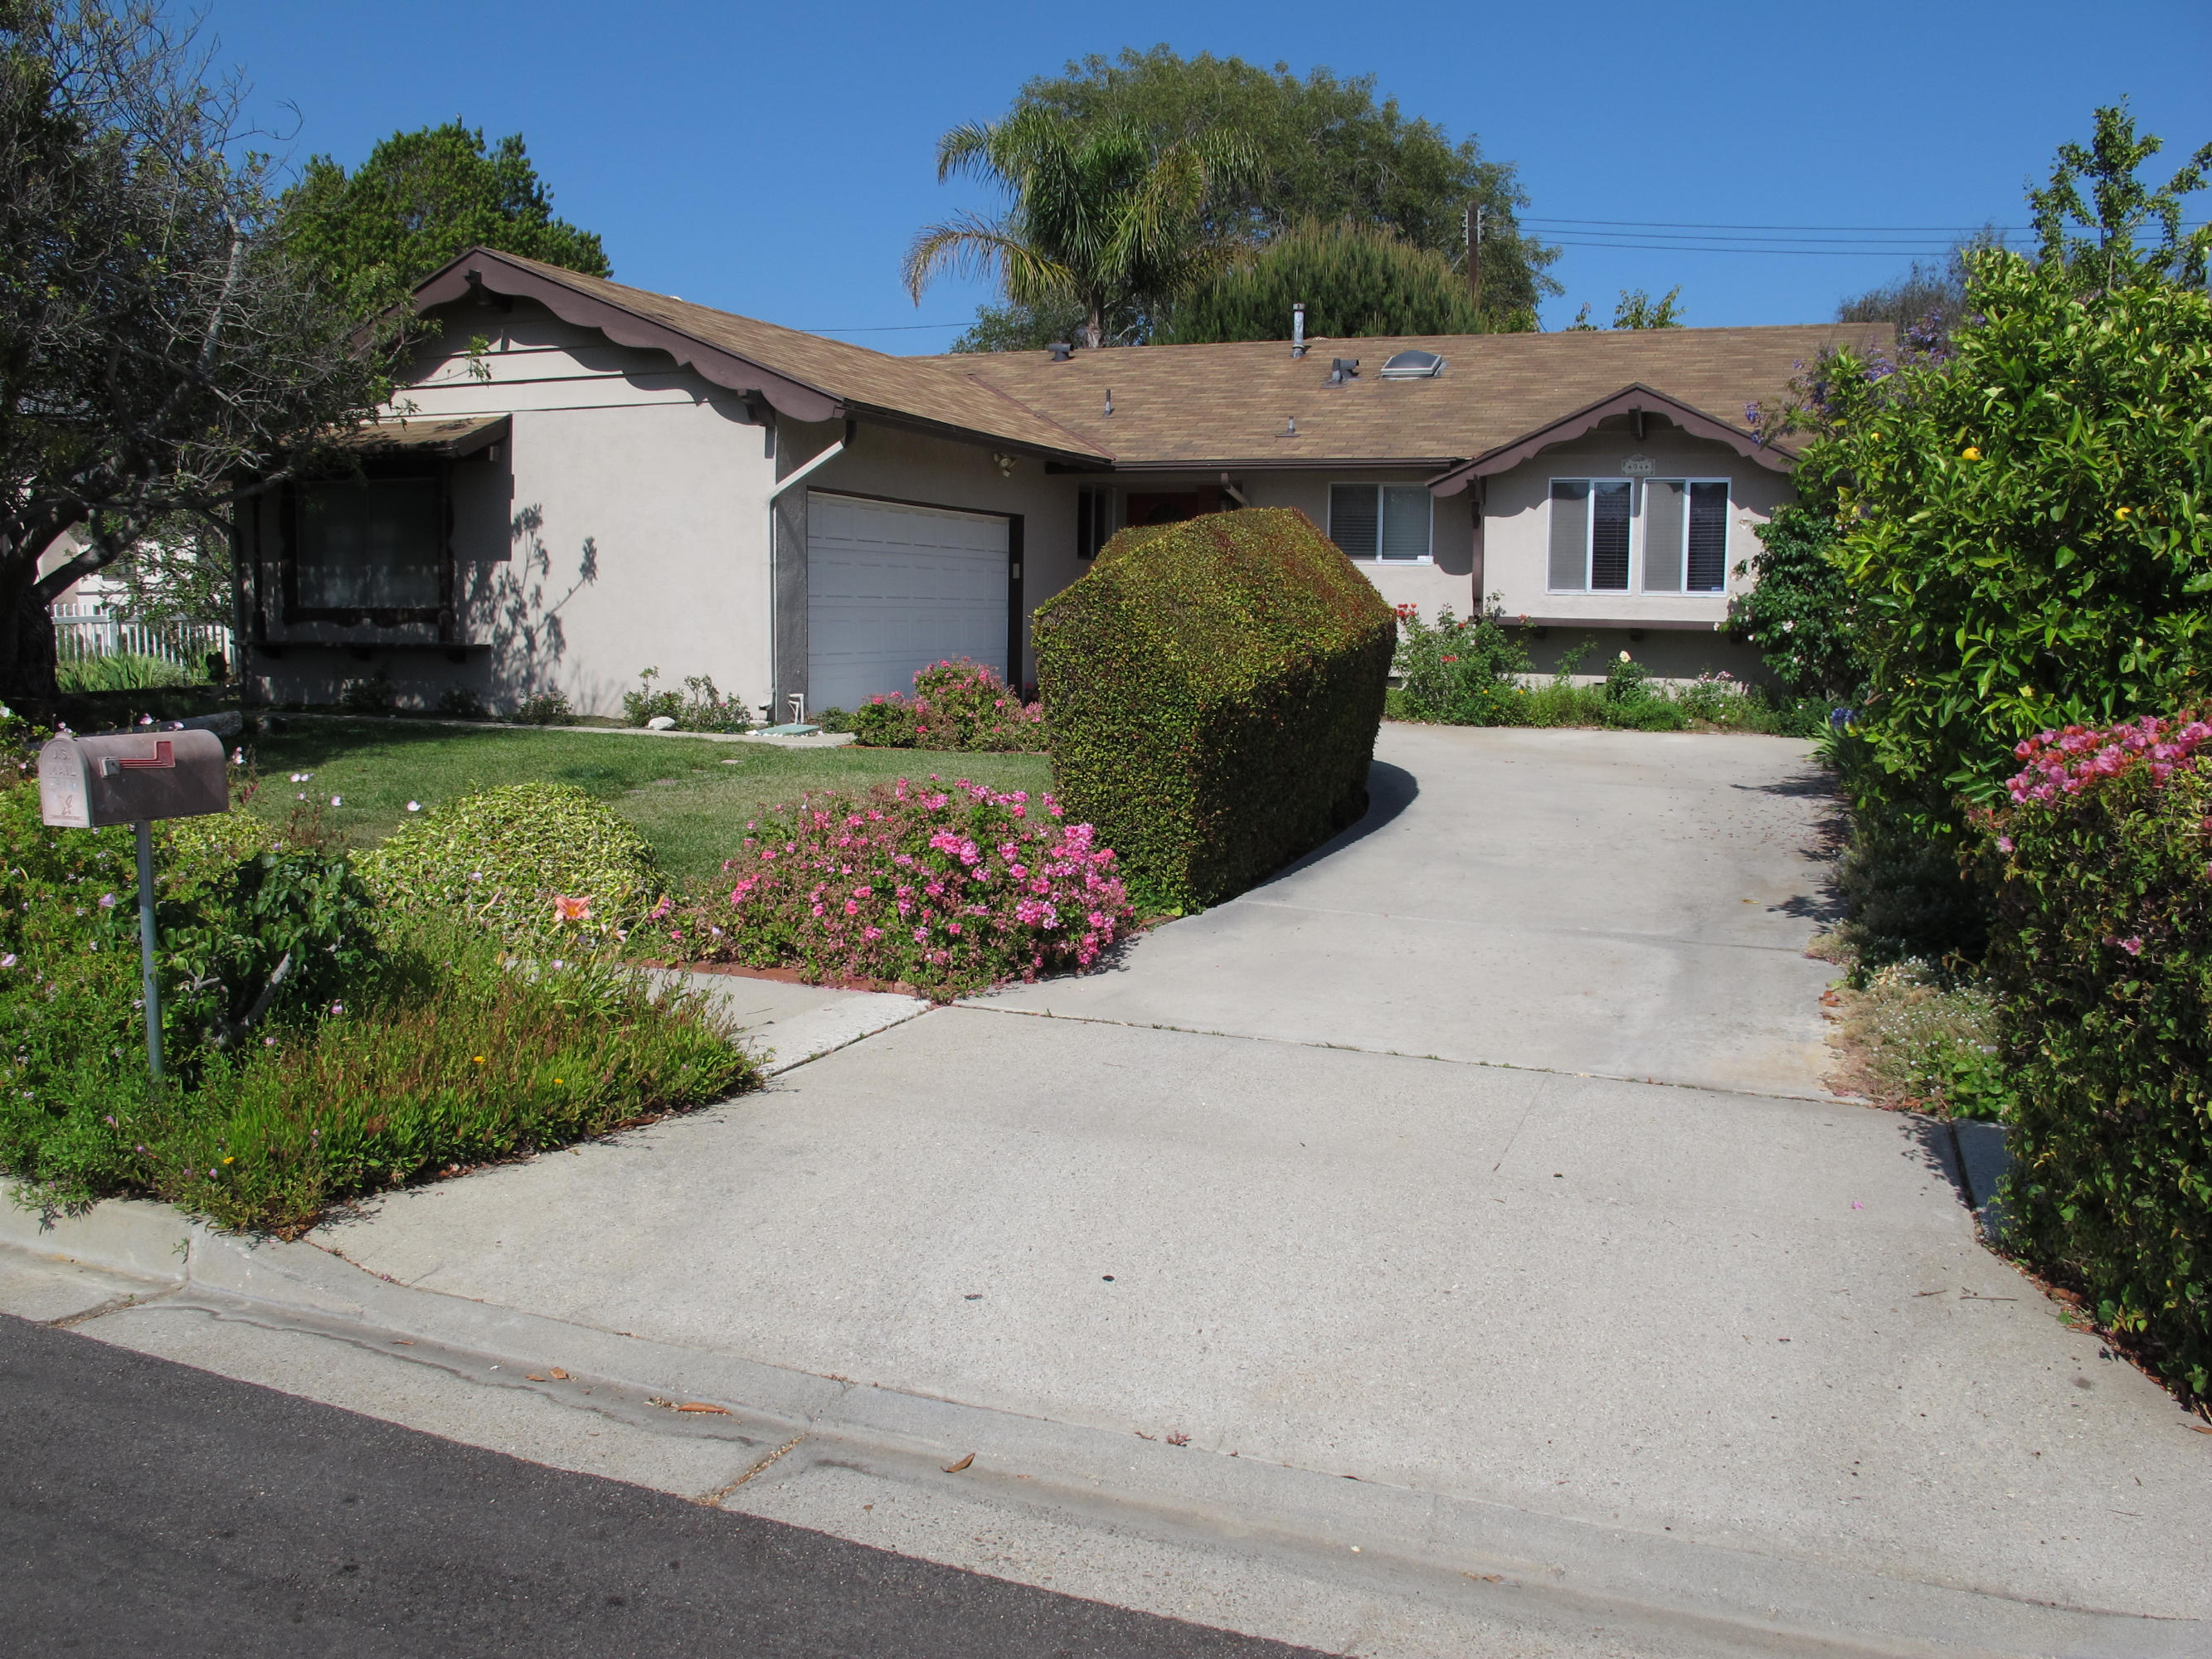 Property photo for 94 Surrey Pl Goleta, California 93117 - 14-2498